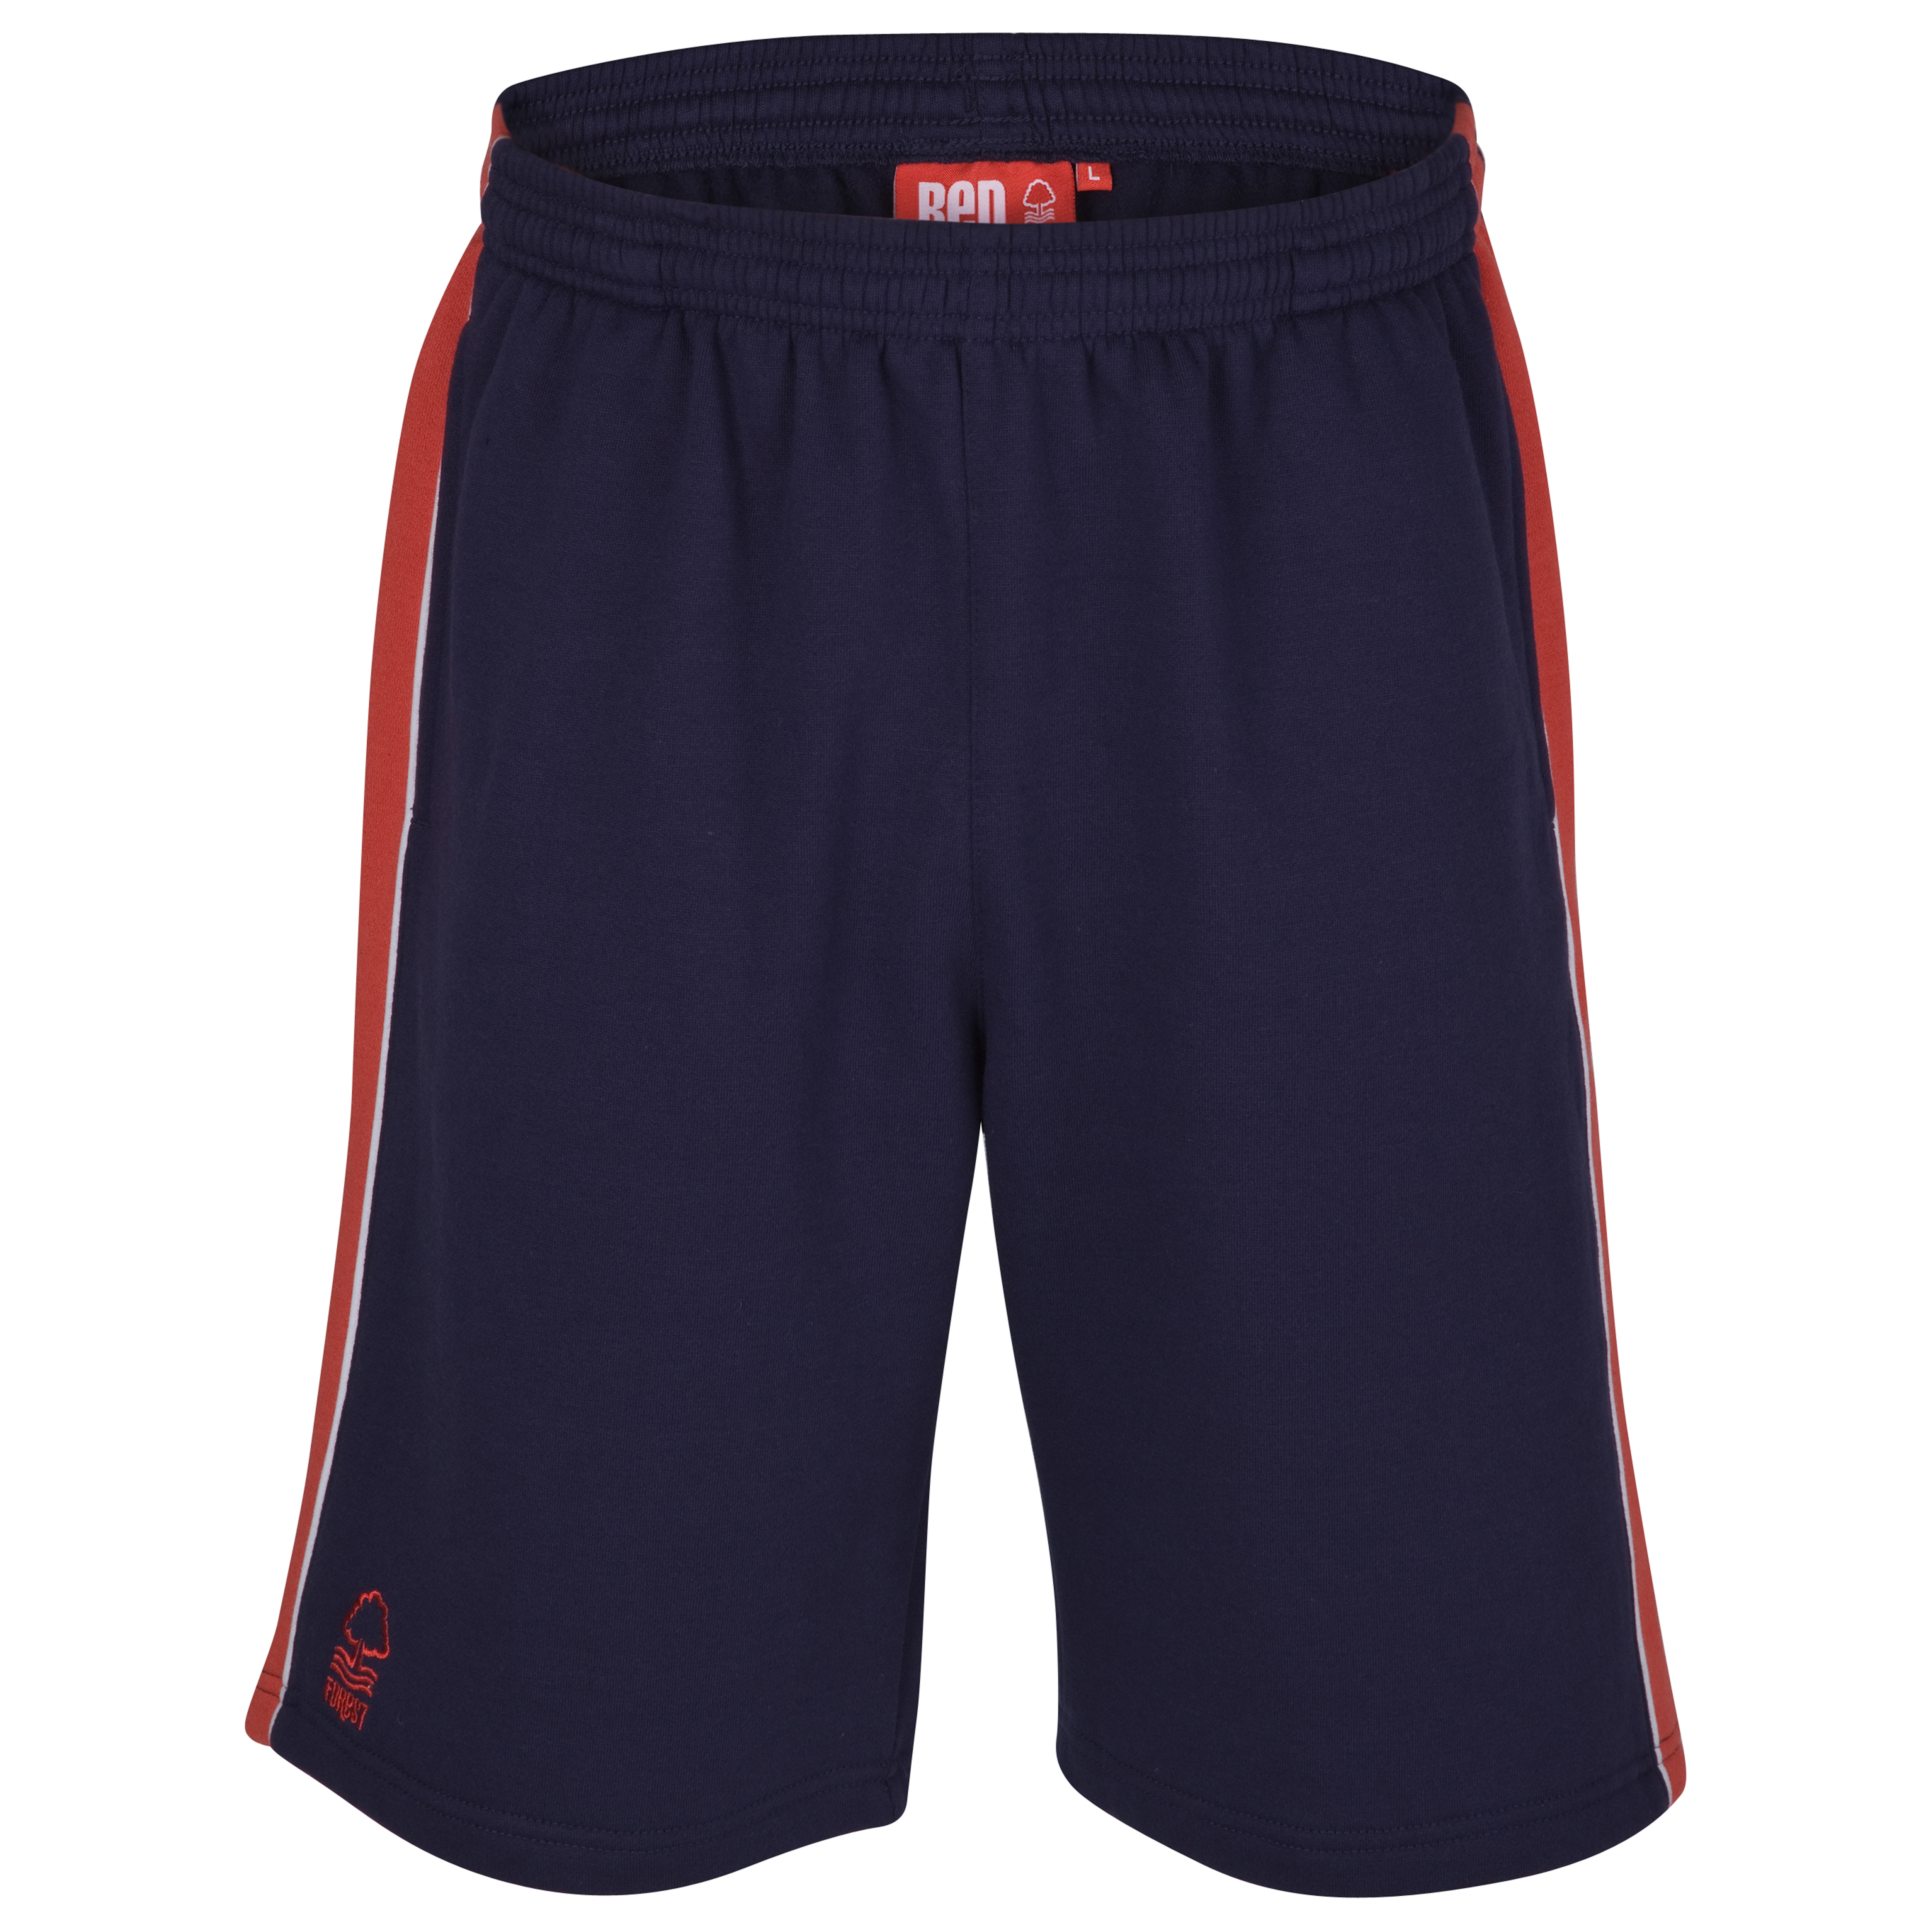 Nottingham Forest Essential Pebble Short - Navy/Red